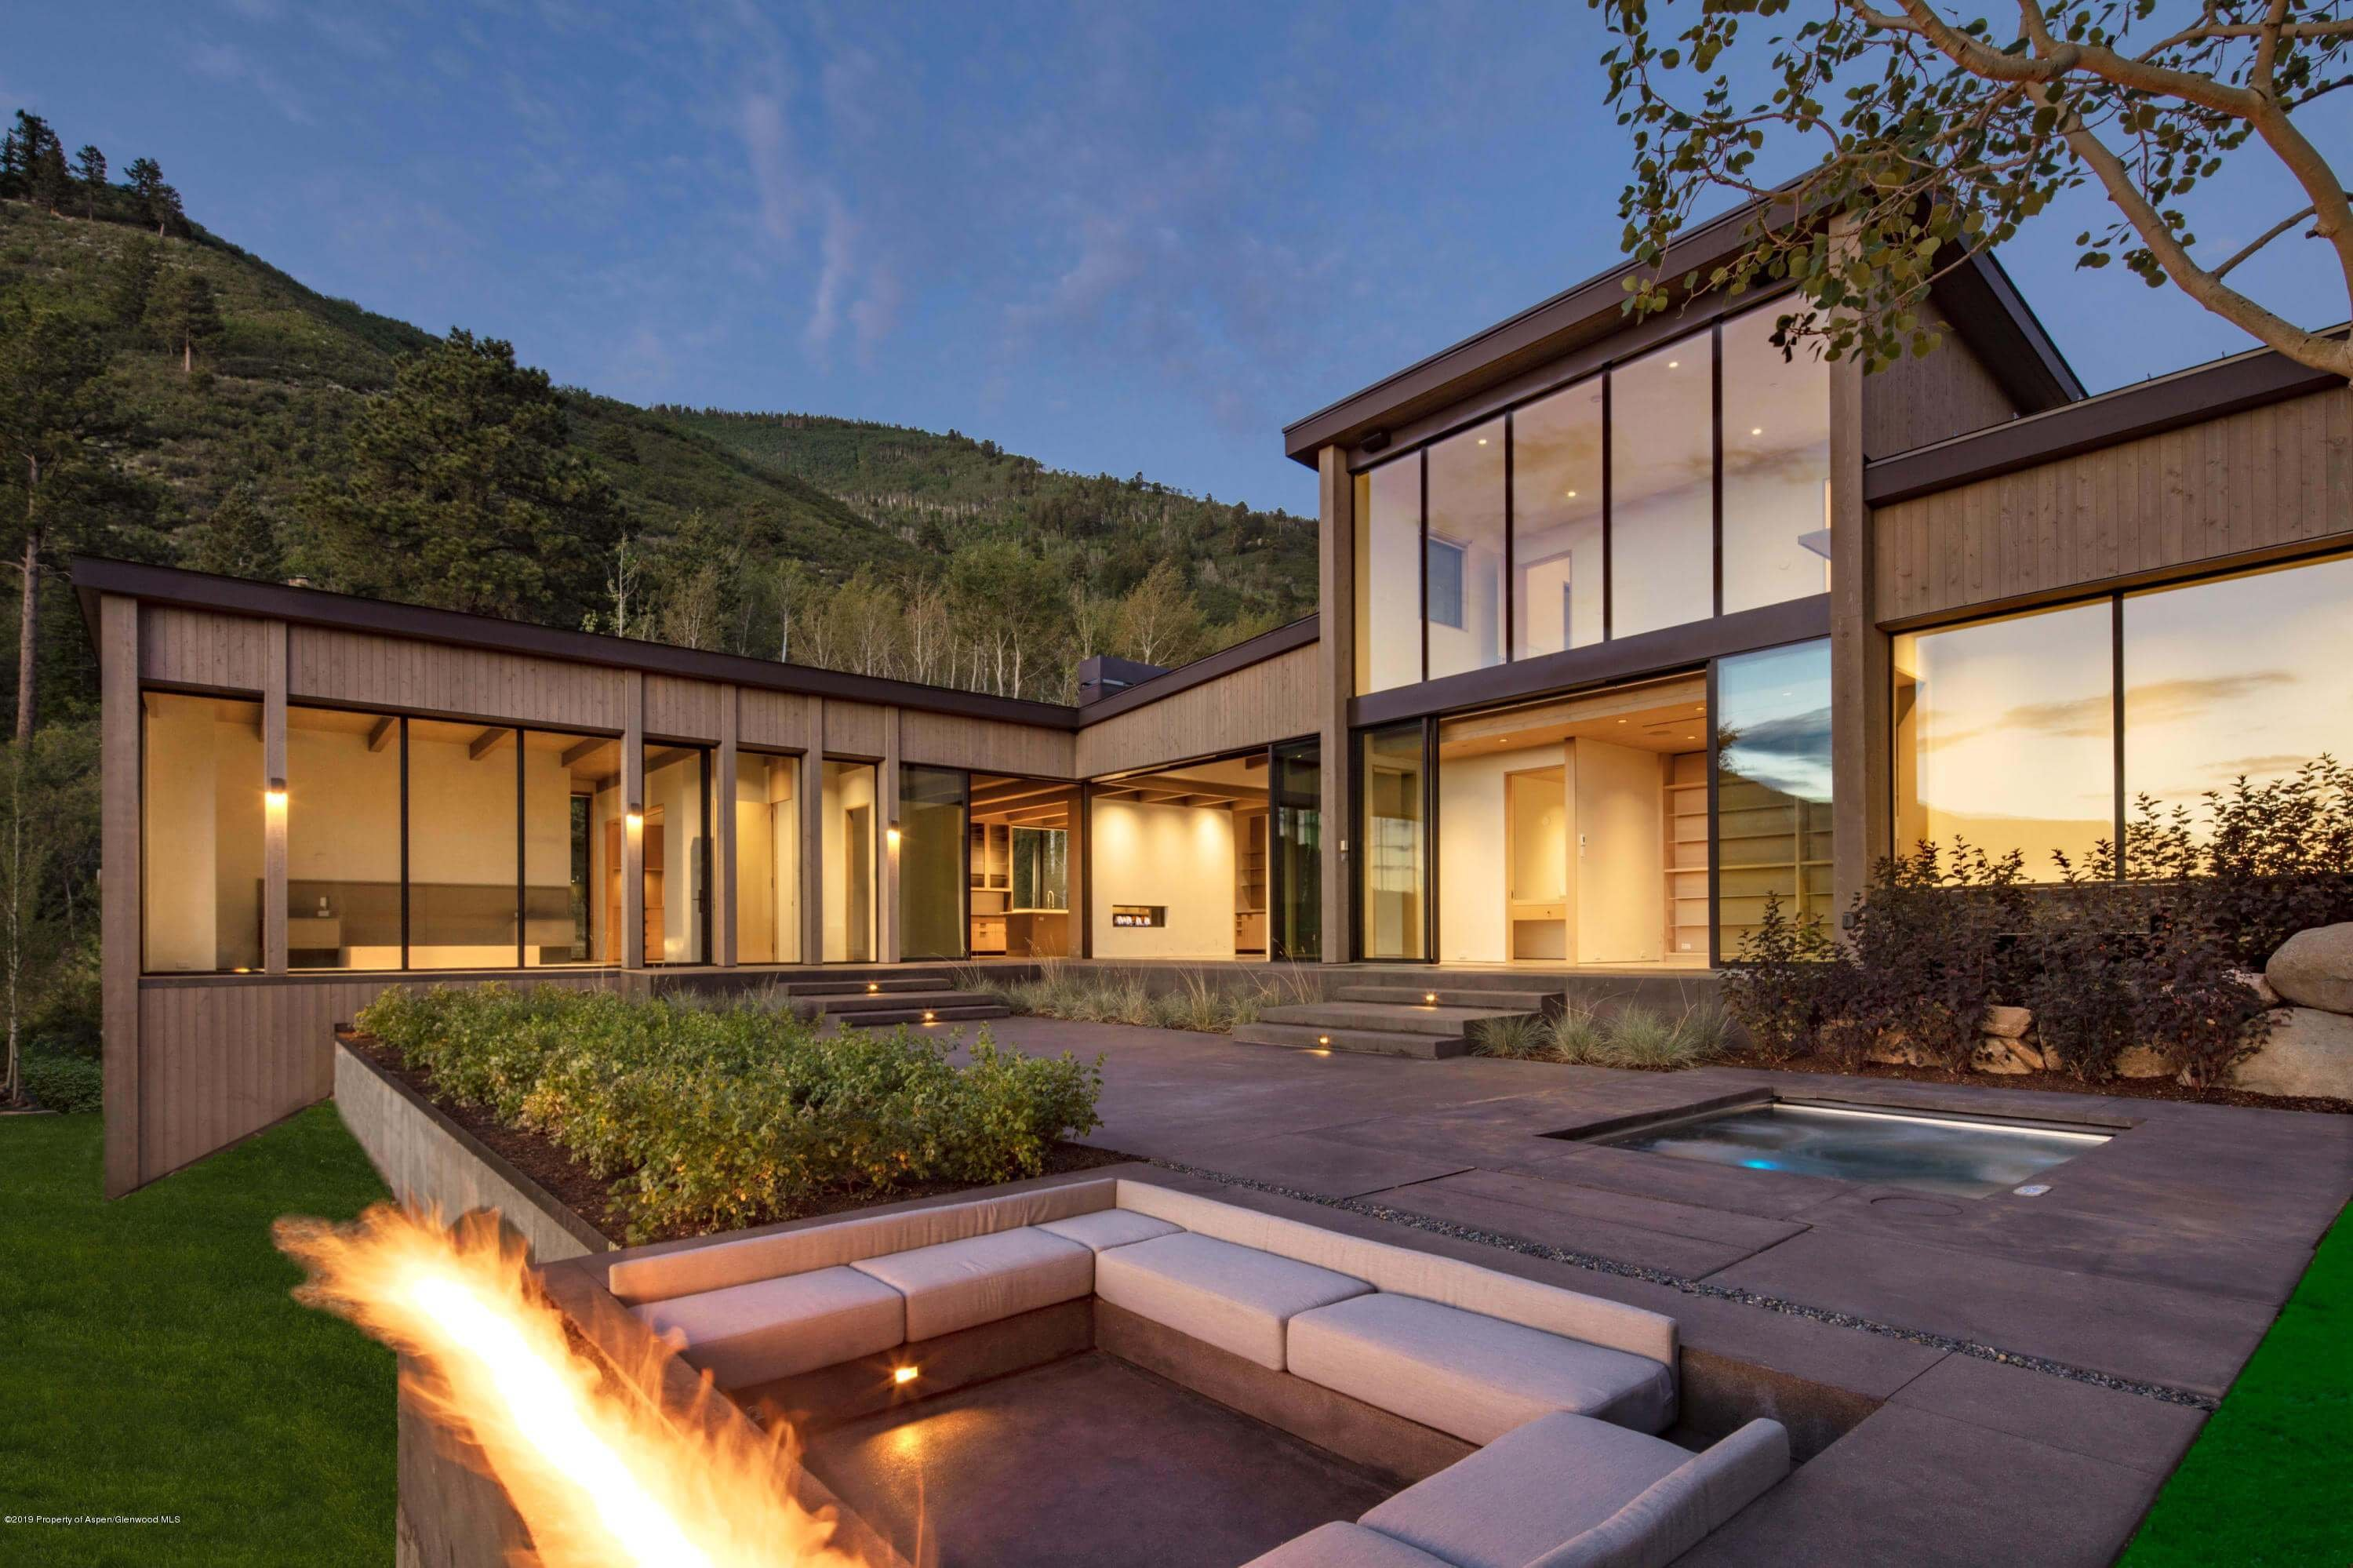 2019 Built East Aspen Contemporary Home at 287 McSkimming Rd Sold $14.4M/$2,271 SF Unfurnished Image